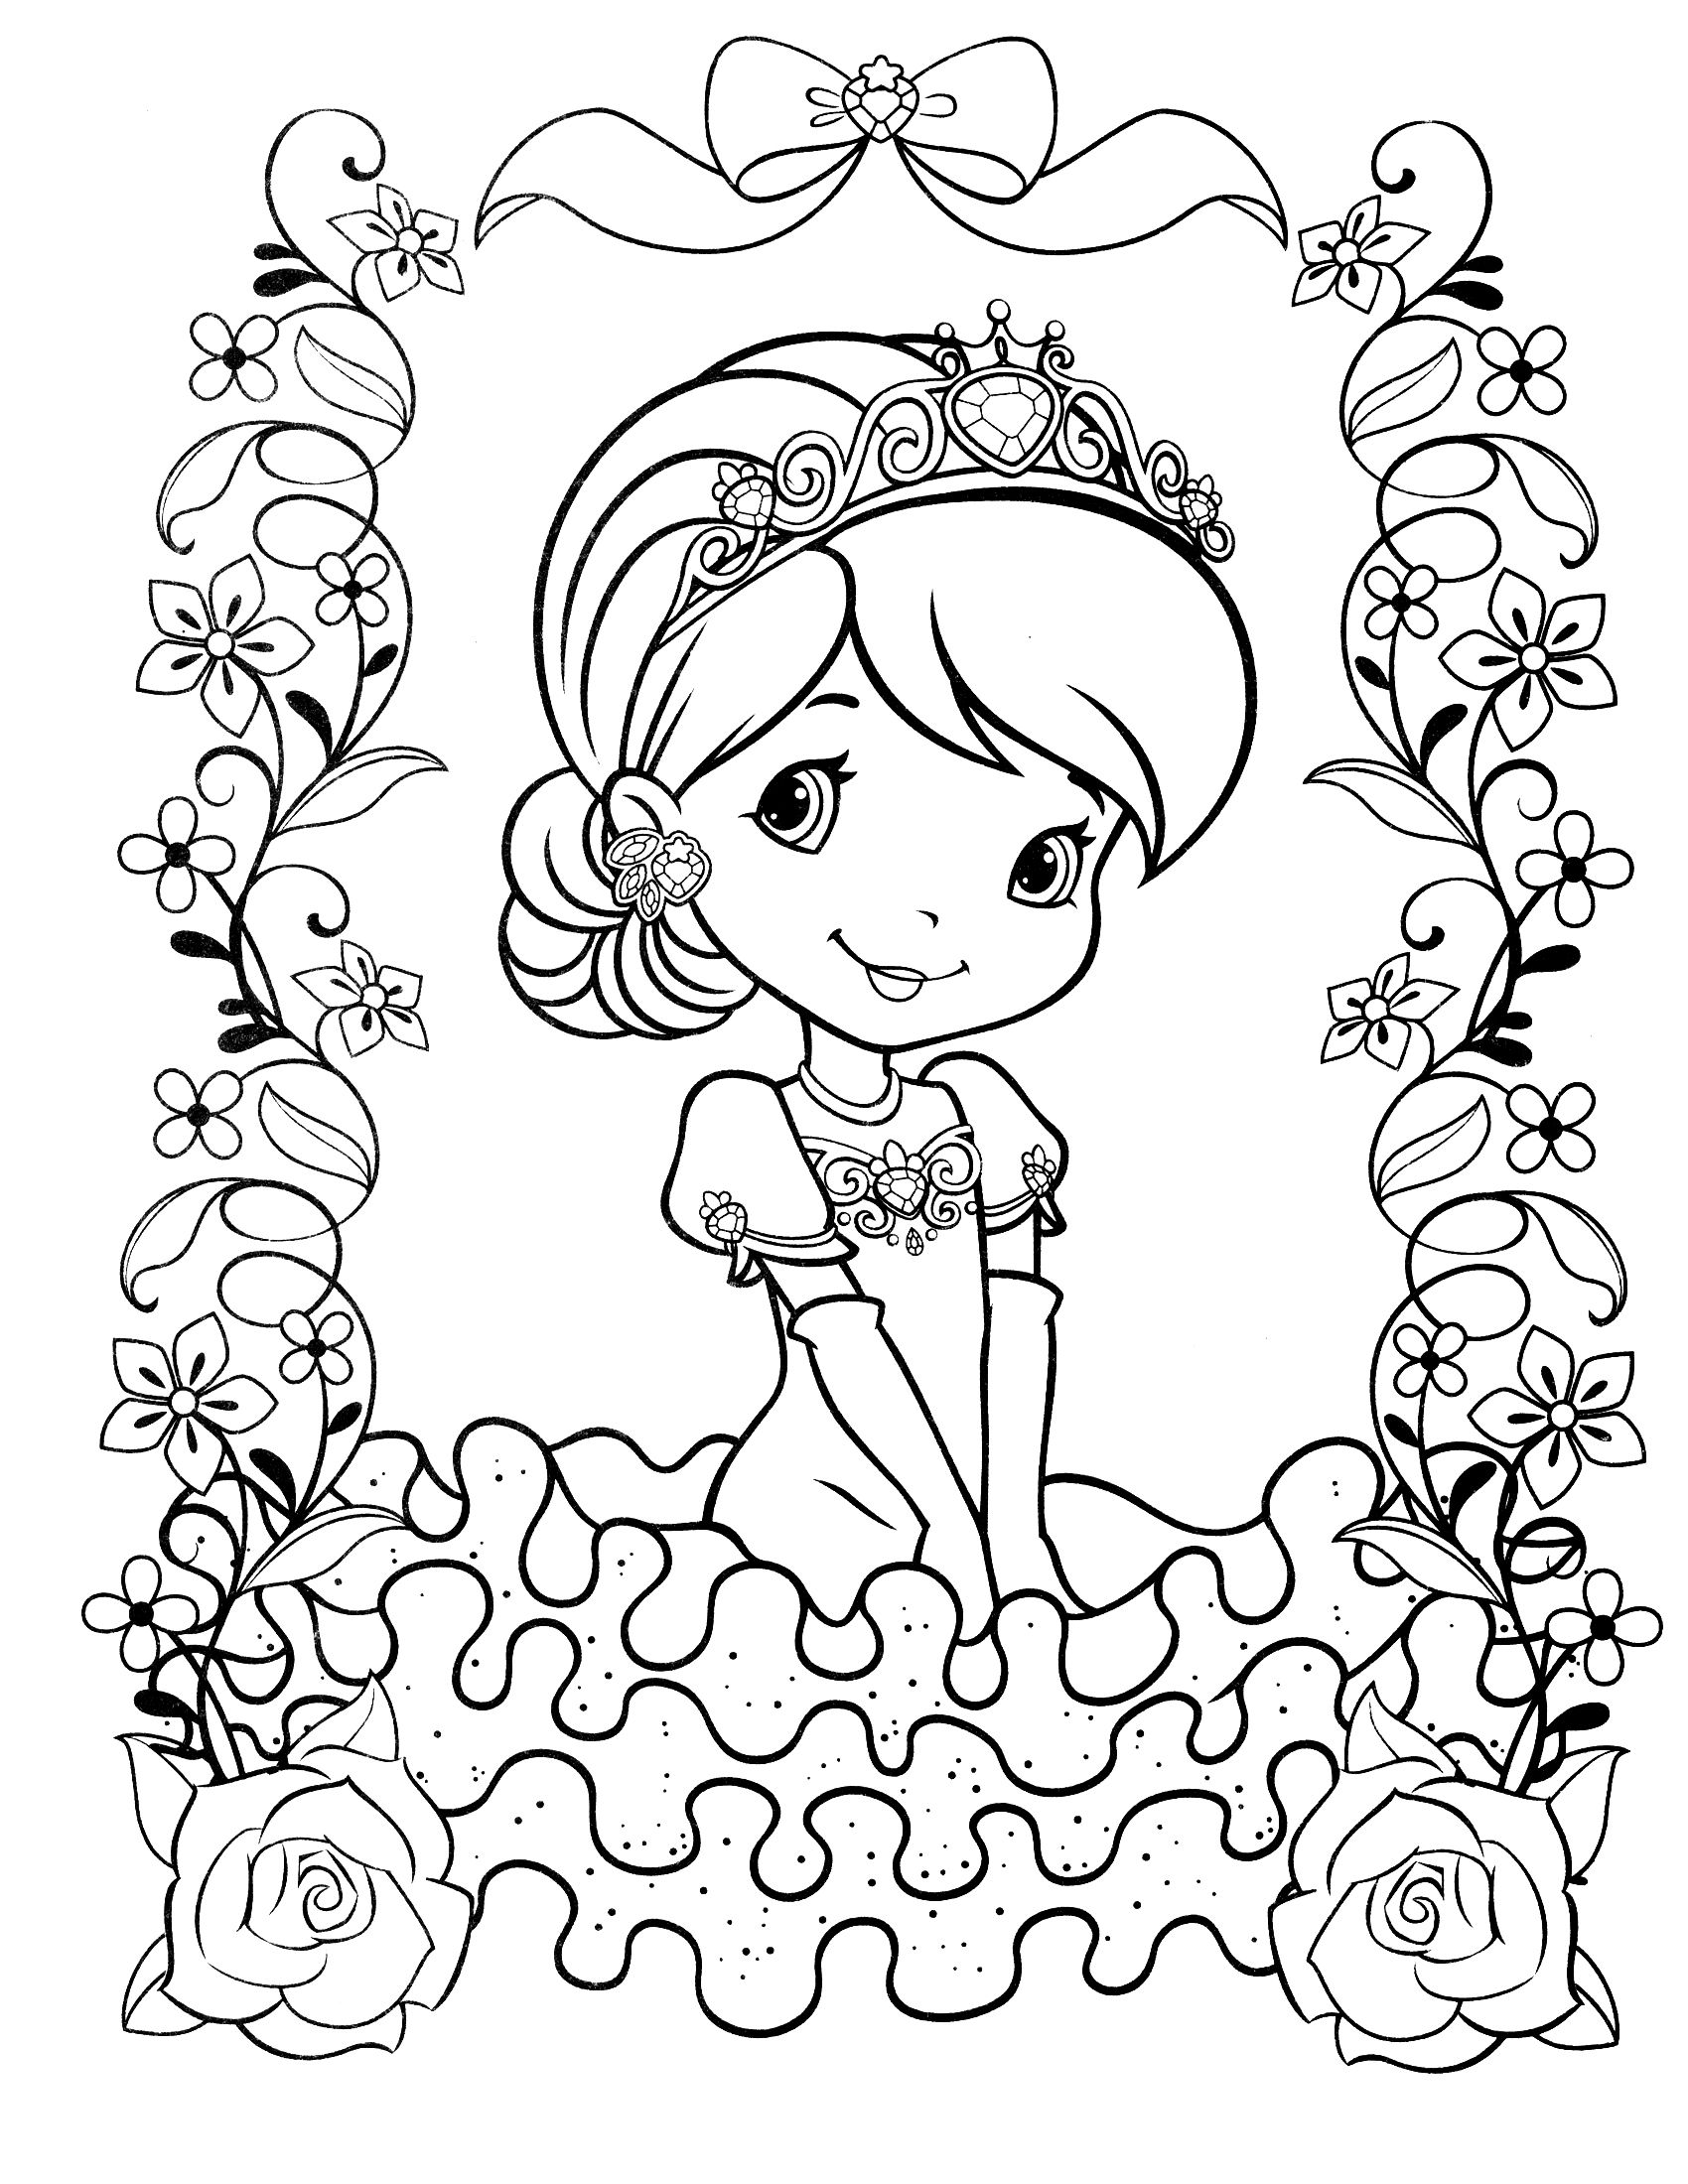 strawberry shortcake coloring pages characters - photo#12